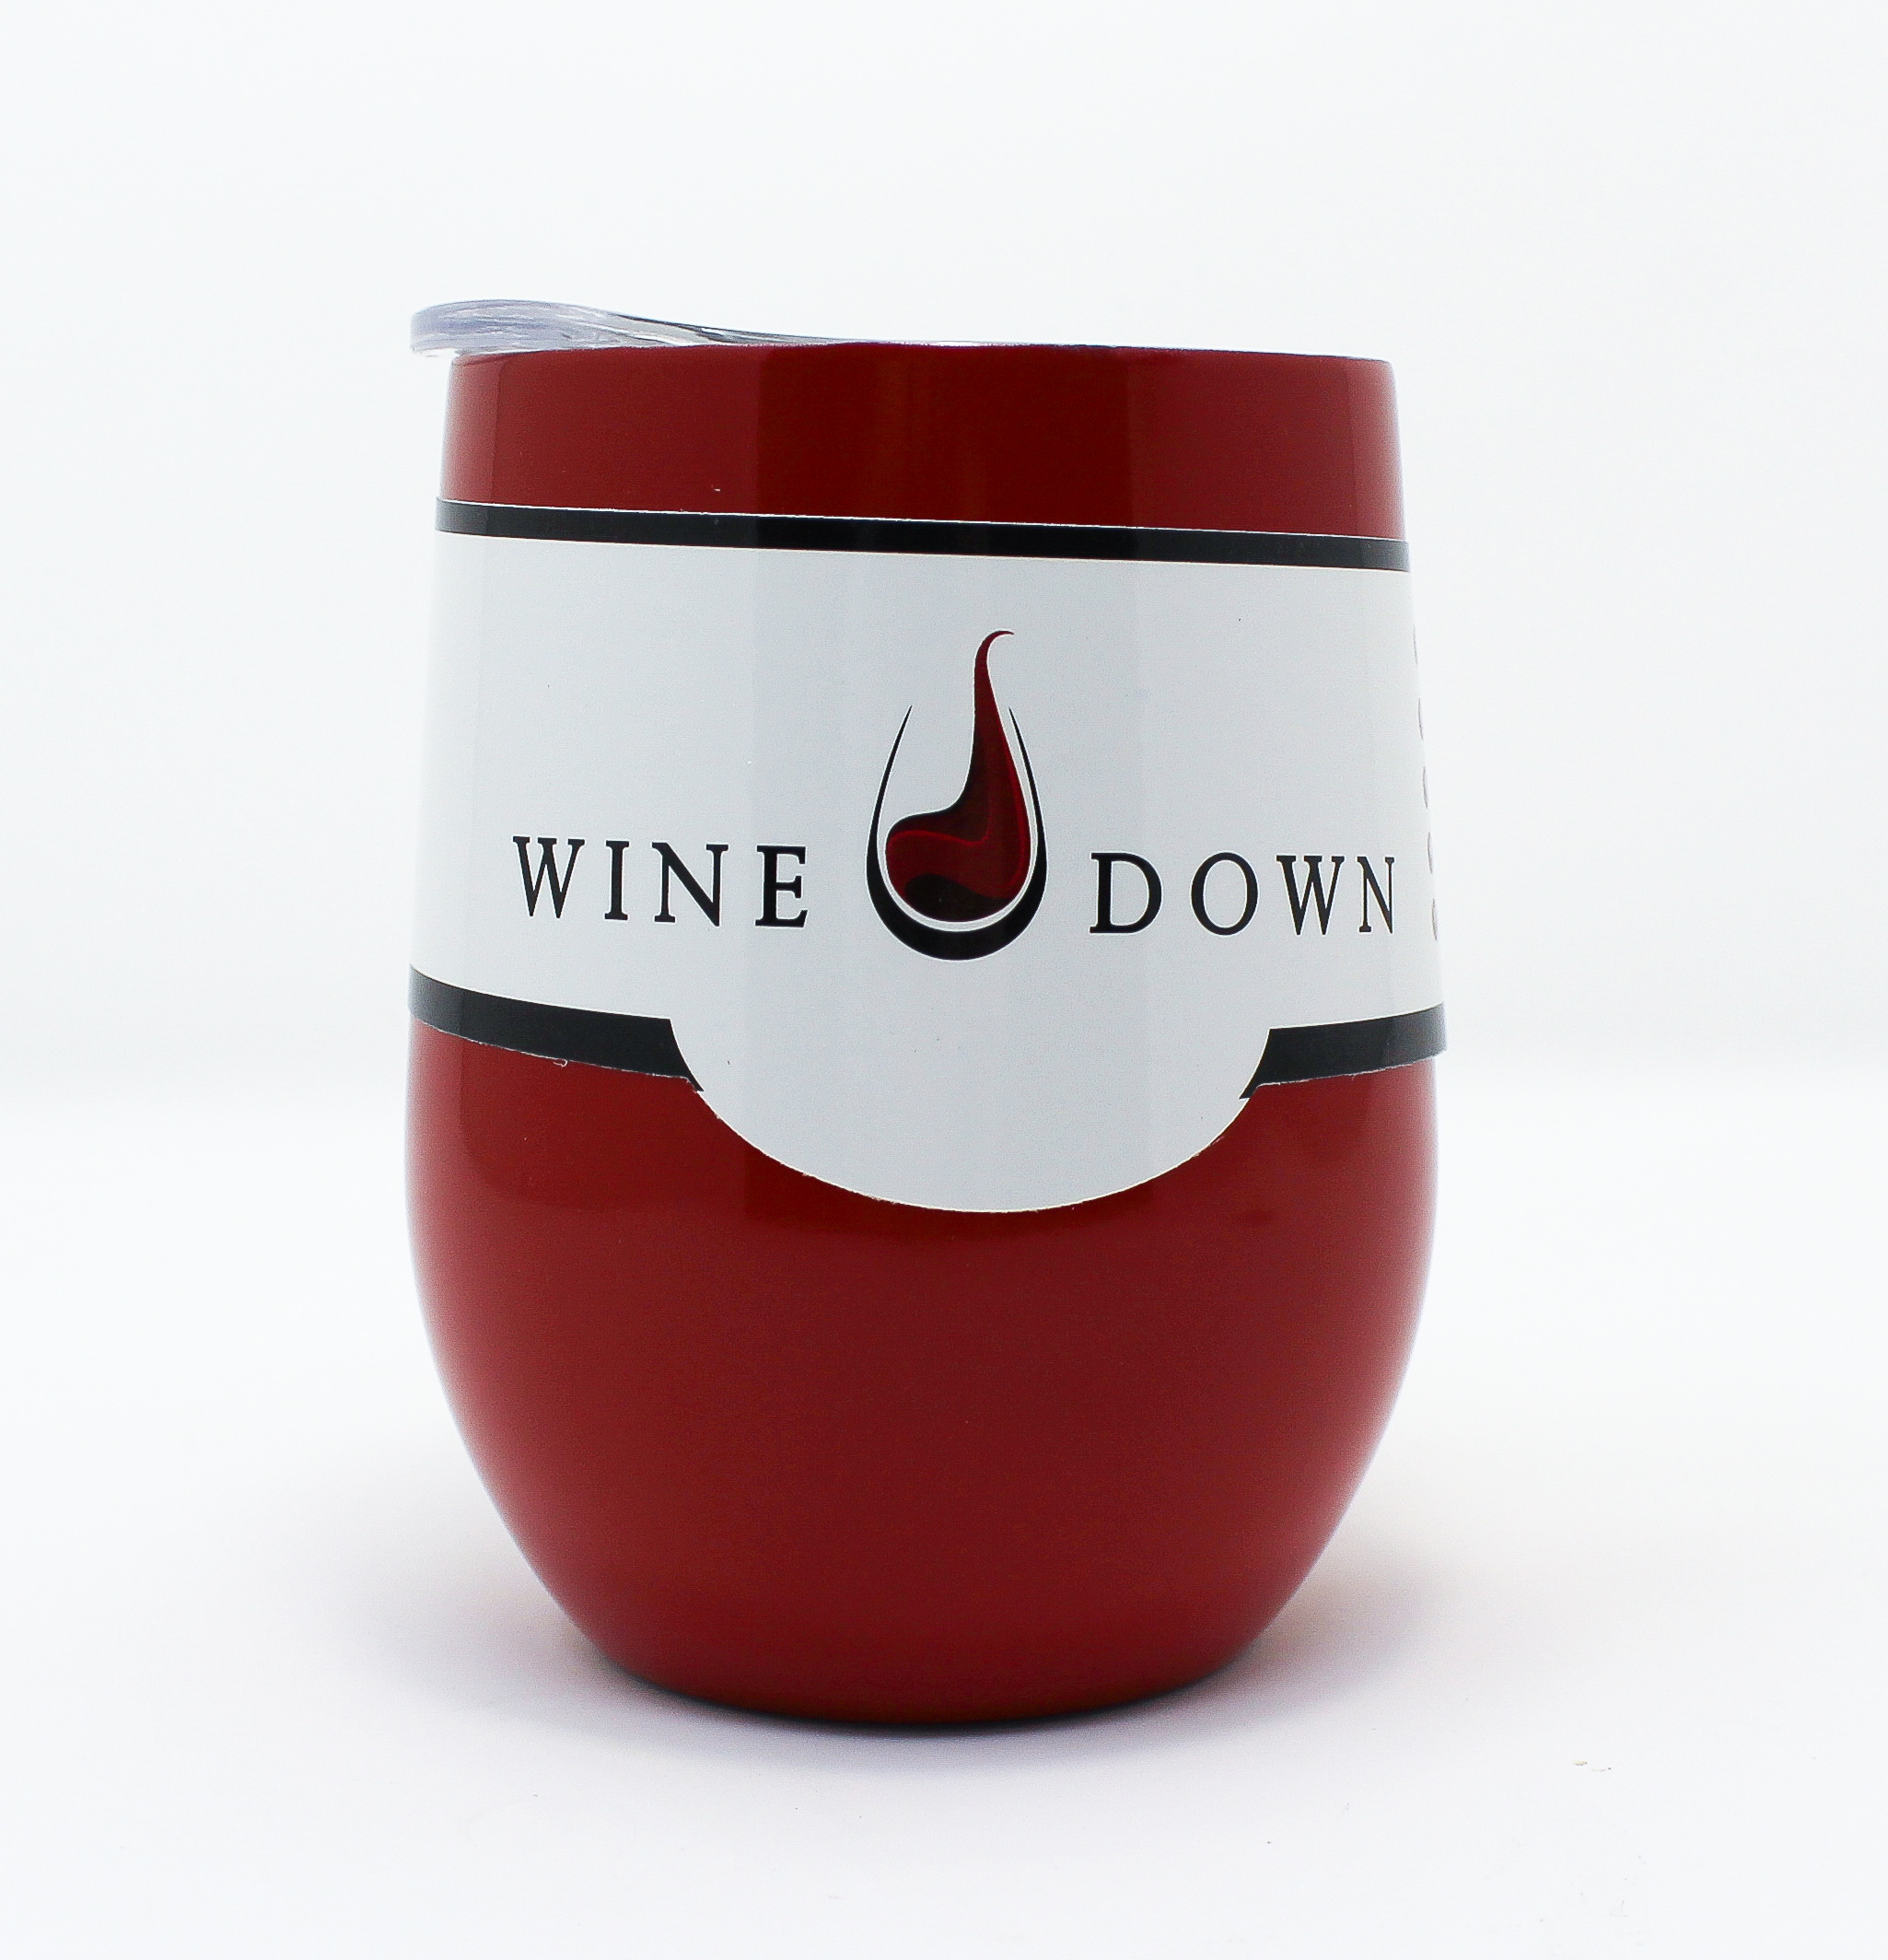 Wine Down 9 oz Stainless Steel Wine Glass Tumblers Eco-Friendly Clear Plastic Lid w/Rubber Seal Perfect for Outdoor